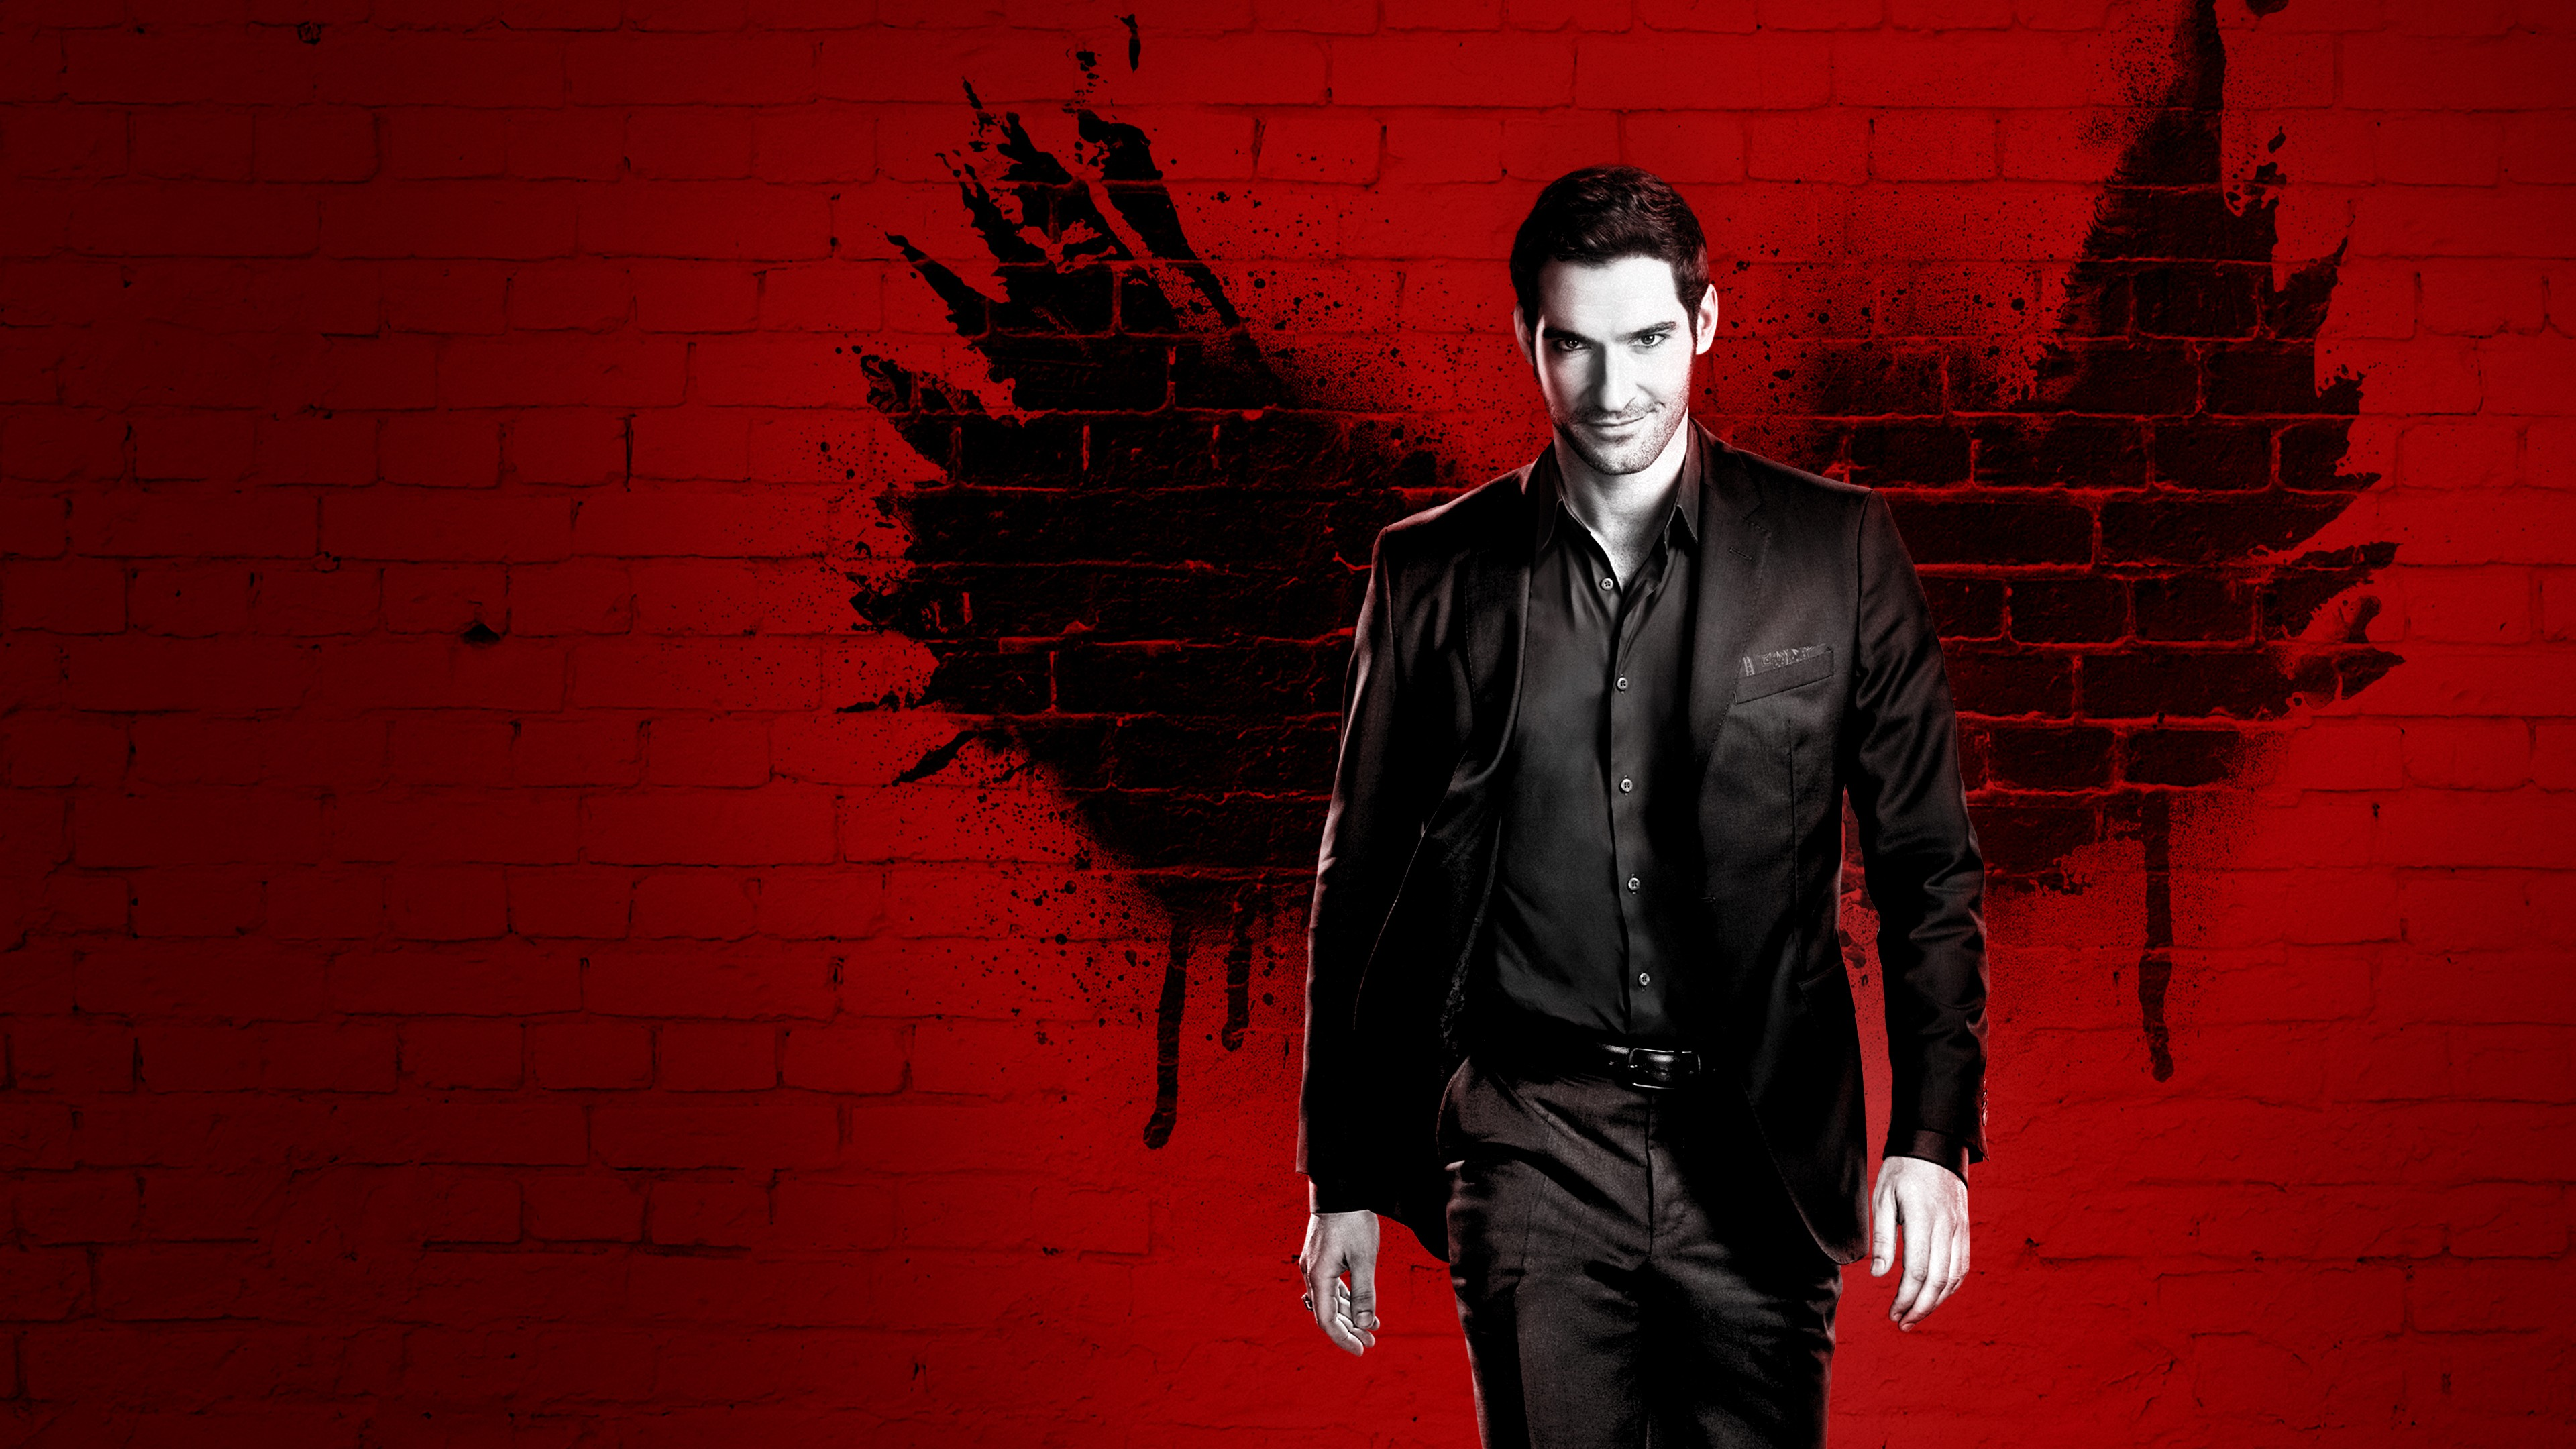 Wallpaper lucifer season 3 tom ellis tv series 4k - Tv series wallpaper 4k ...